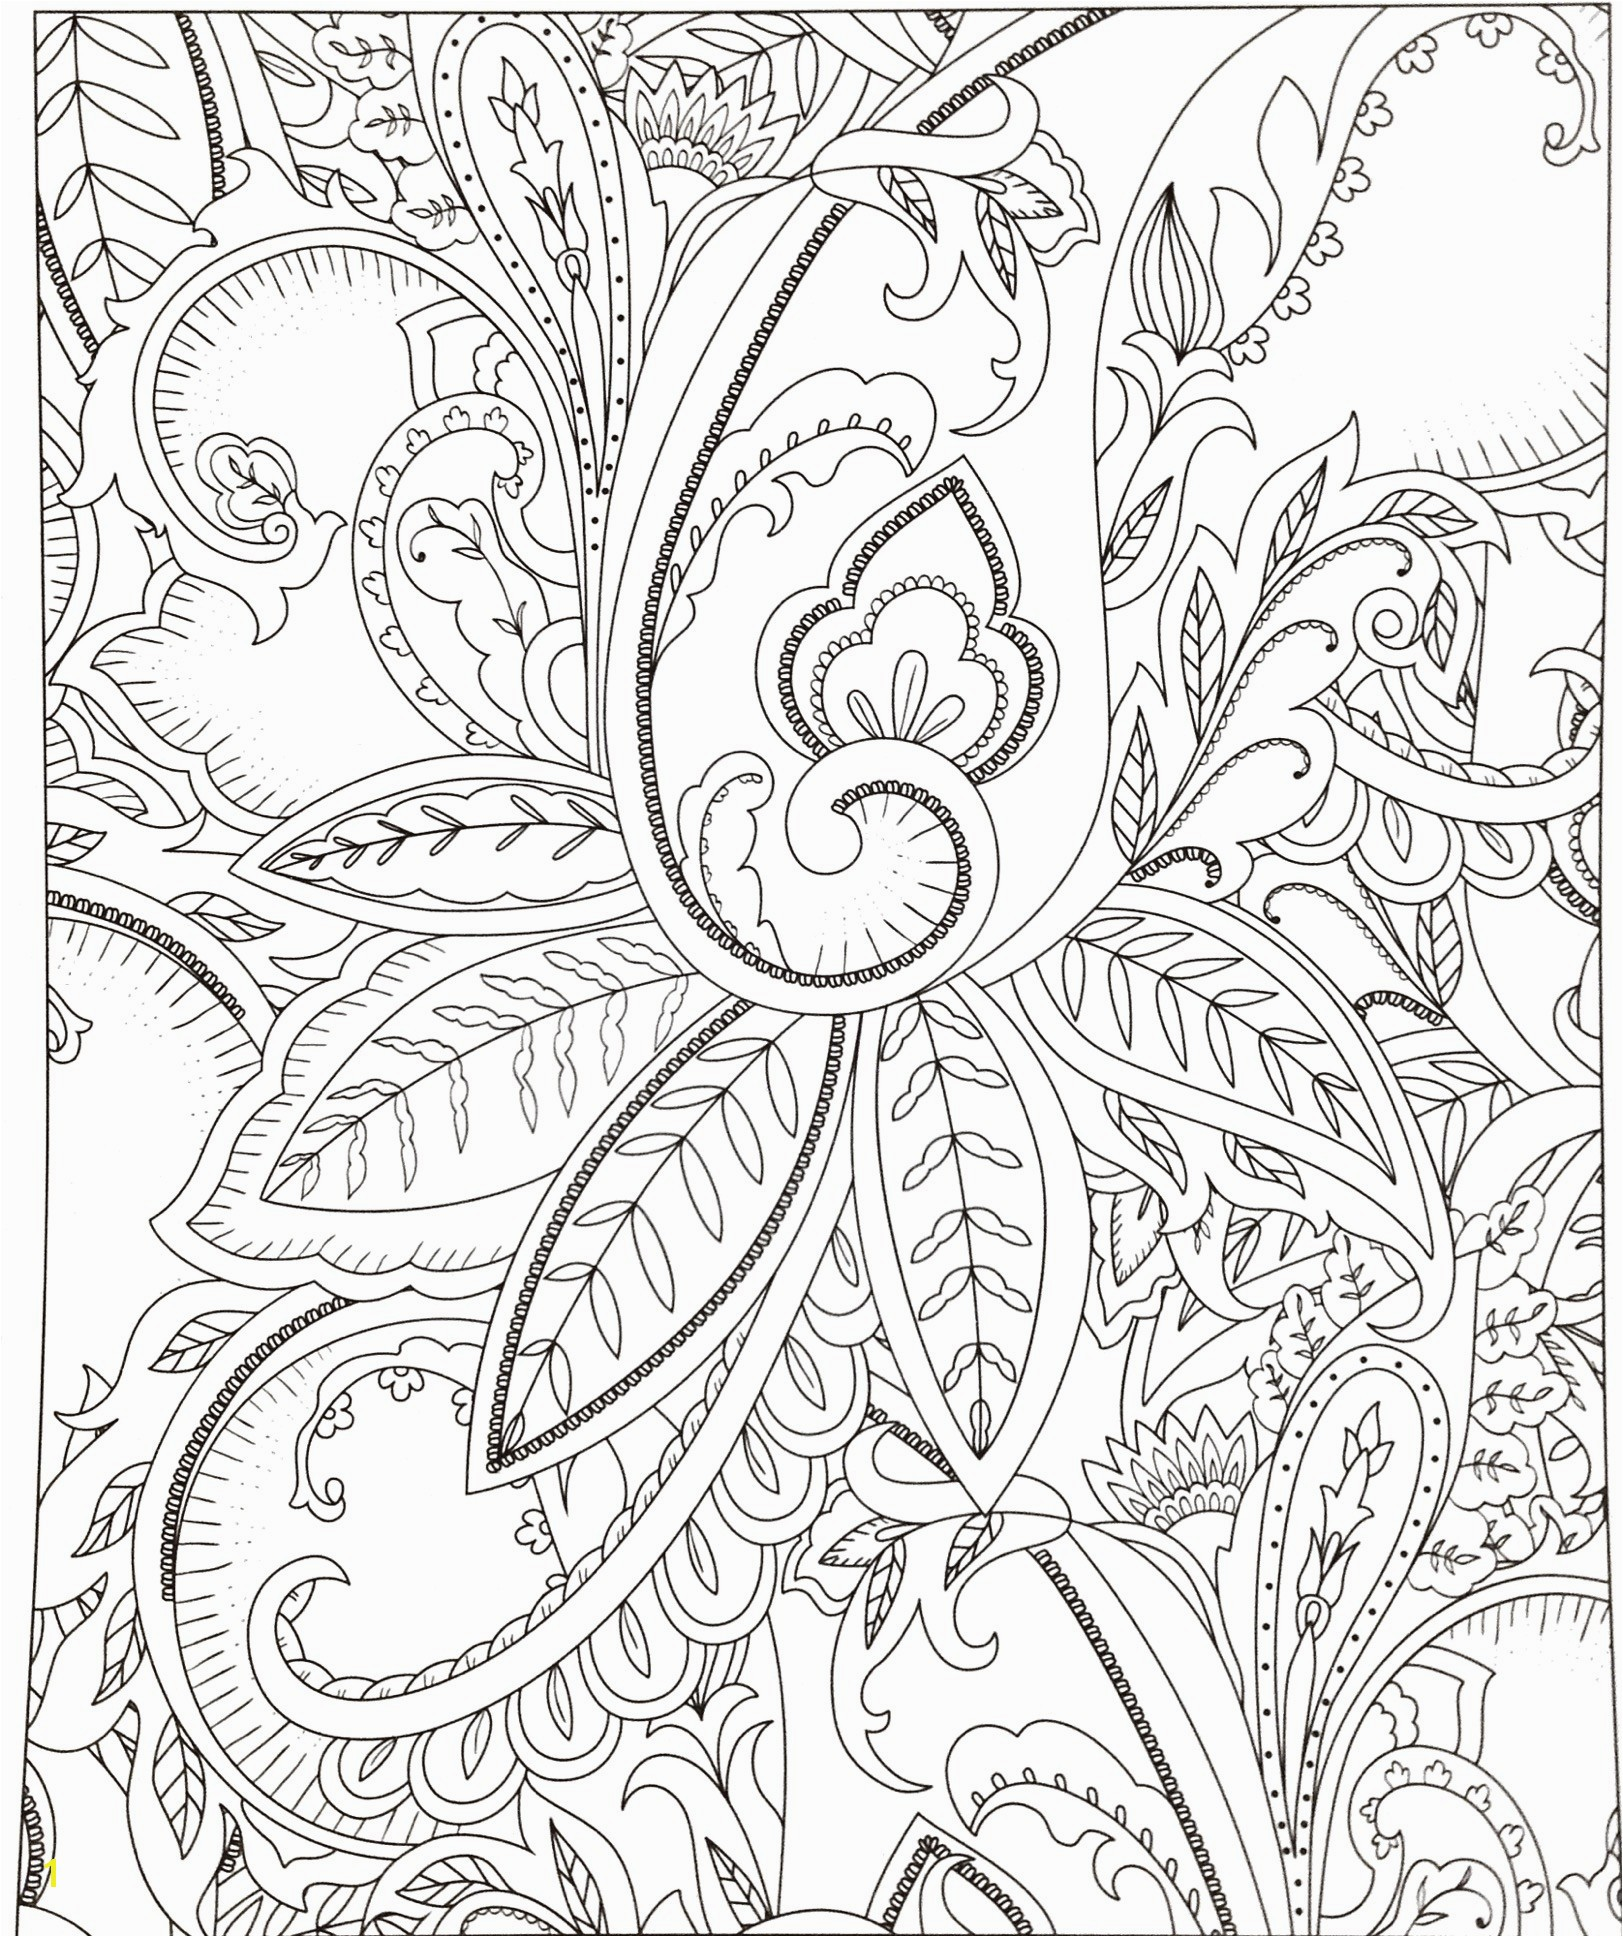 Easter Egg Designs Coloring Pages Unique Fresh S S Media Cache Ak0 Pinimg originals 0d B4 2c